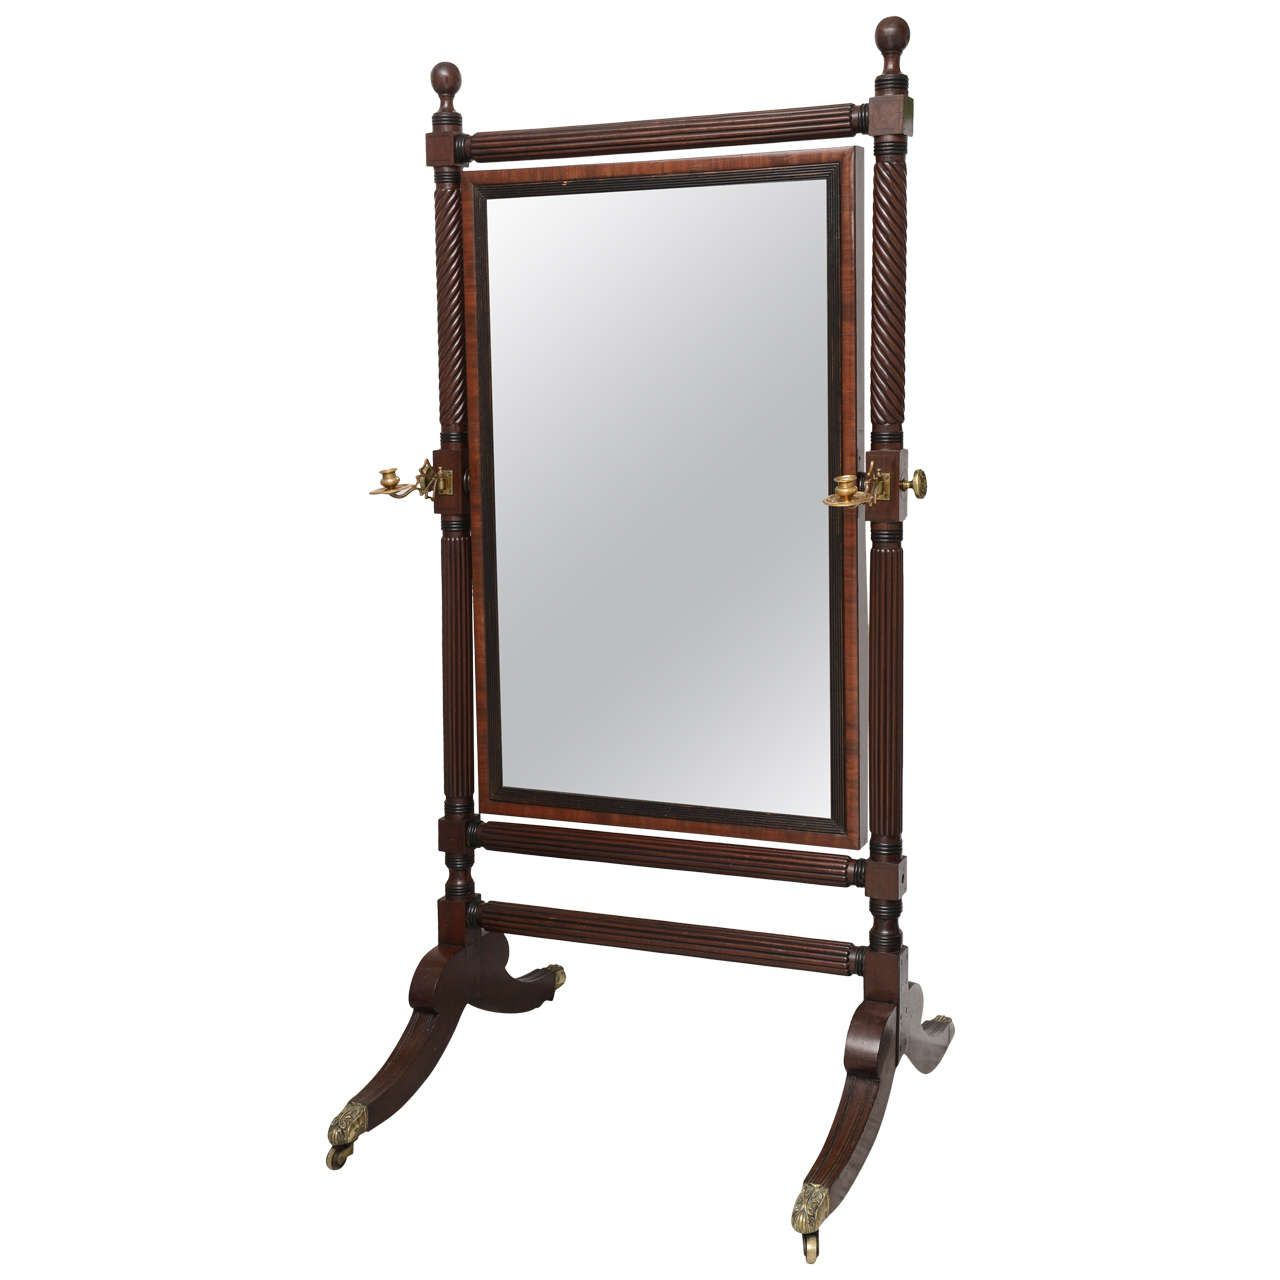 George IV Cheval Mirror | From a unique collection of antique and ...